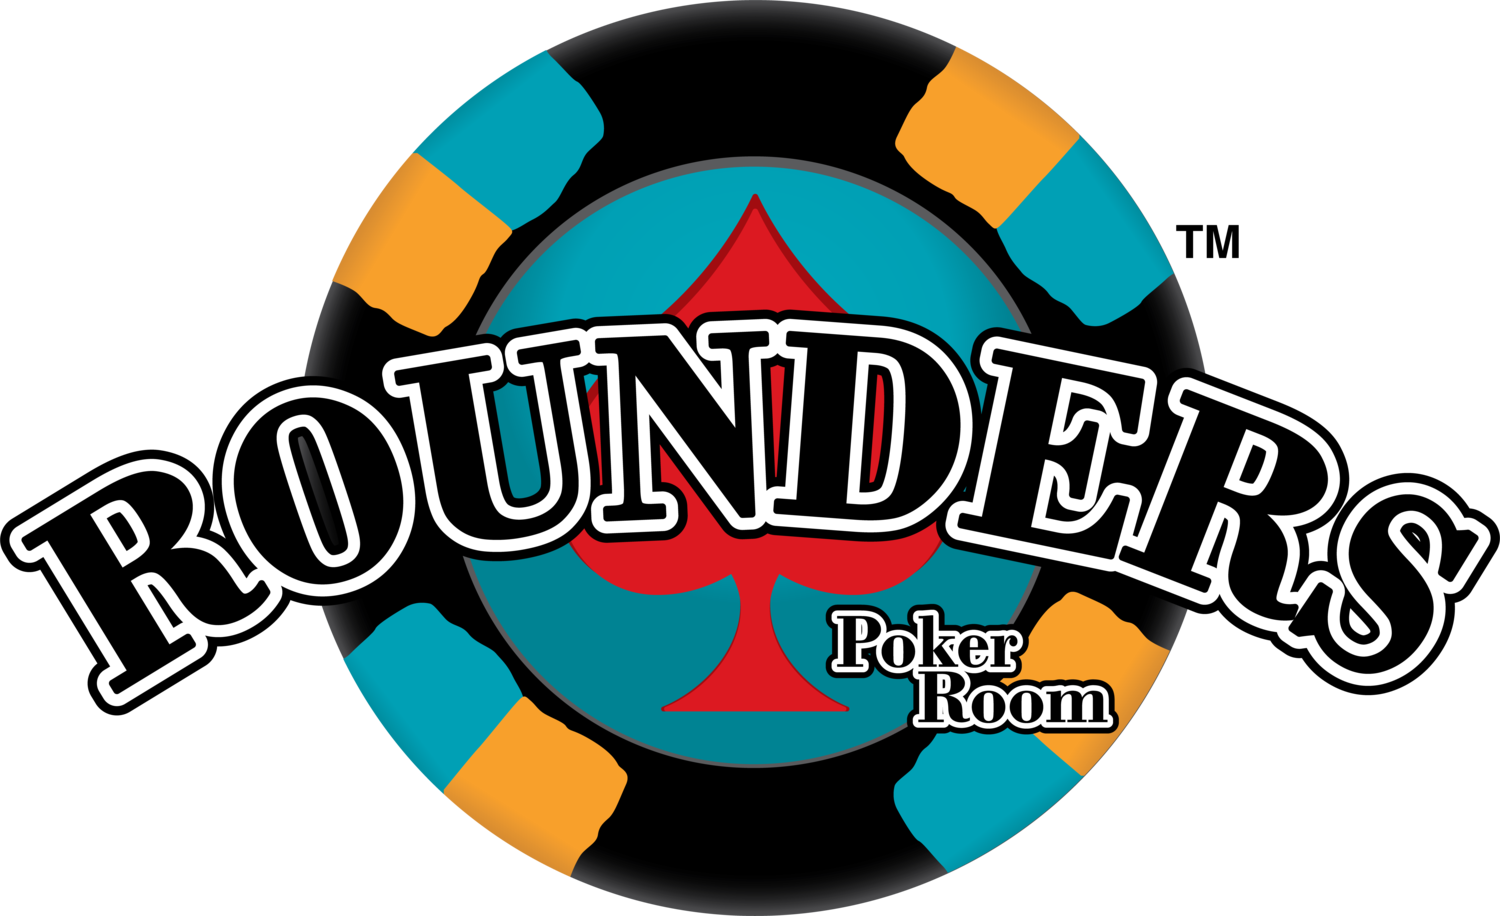 Rounders poker room - 24hr Weekends